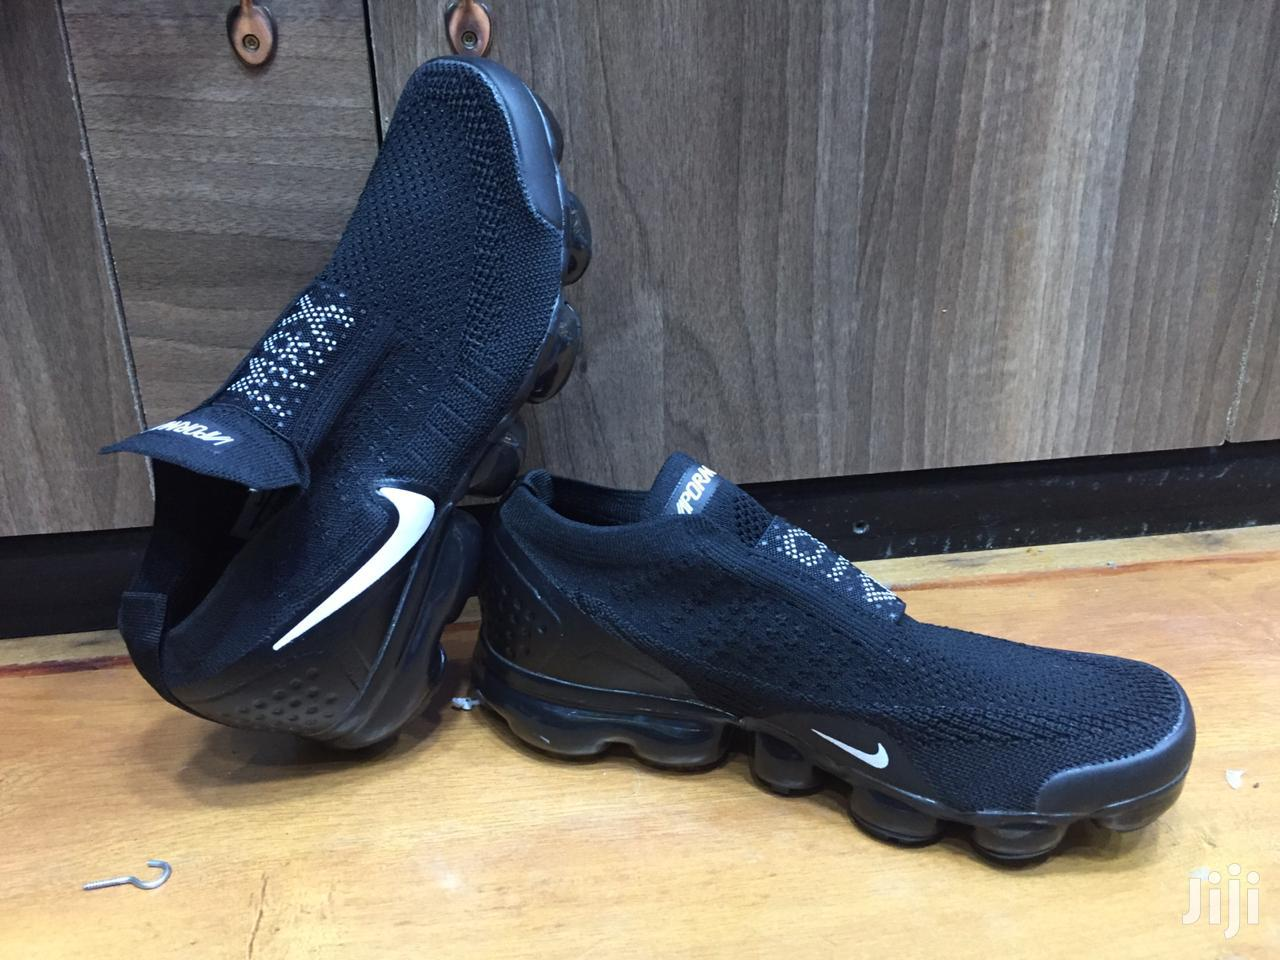 Unisex Casual Nike Vapormax Sneakers | Shoes for sale in Nairobi Central, Nairobi, Kenya